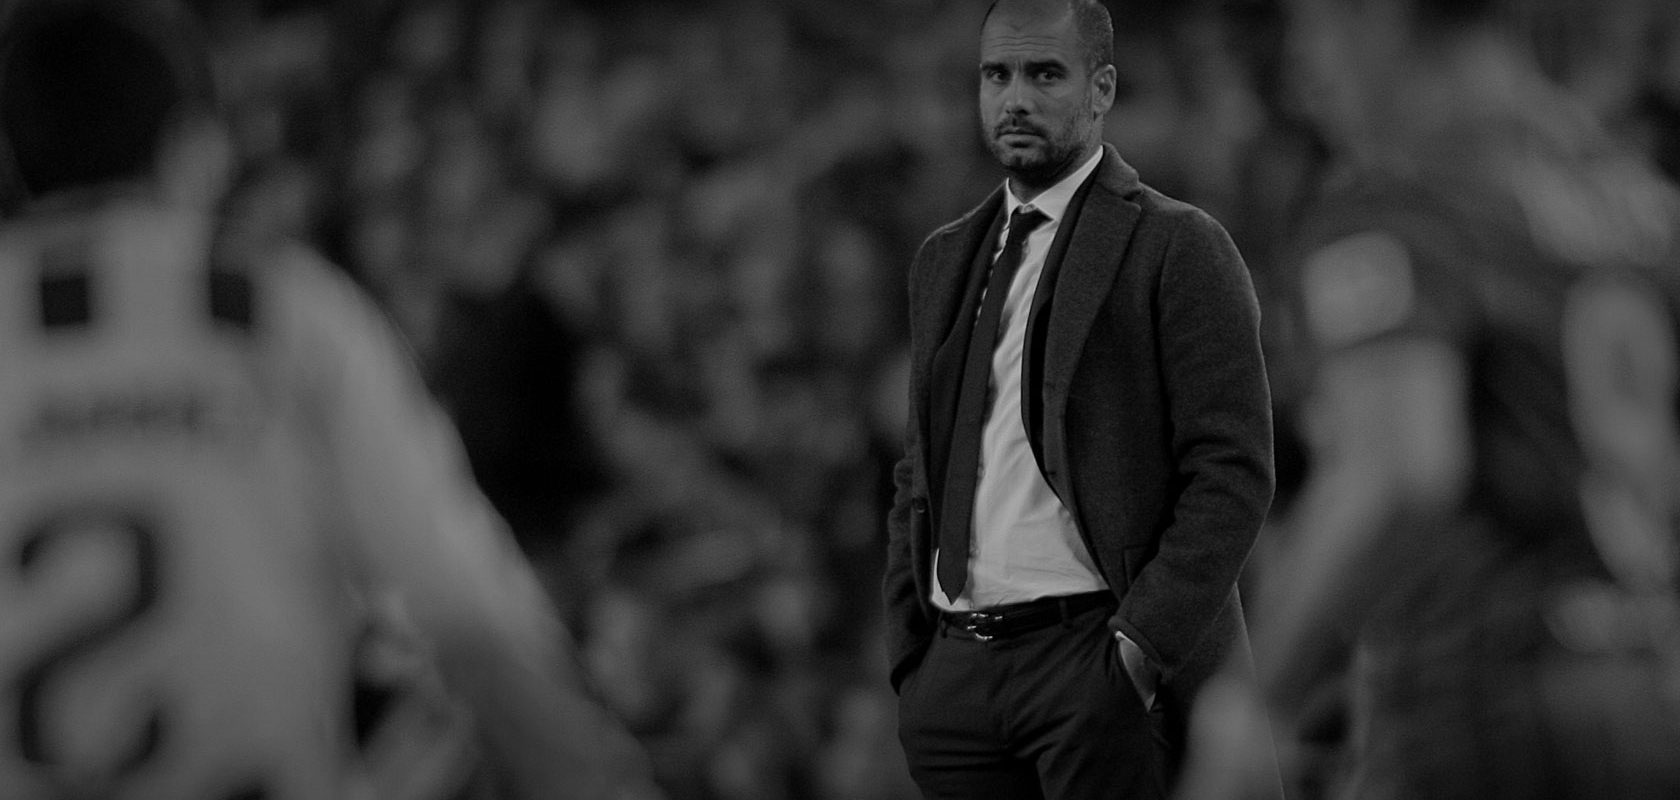 Pep Guardiola looks on from the sideline.